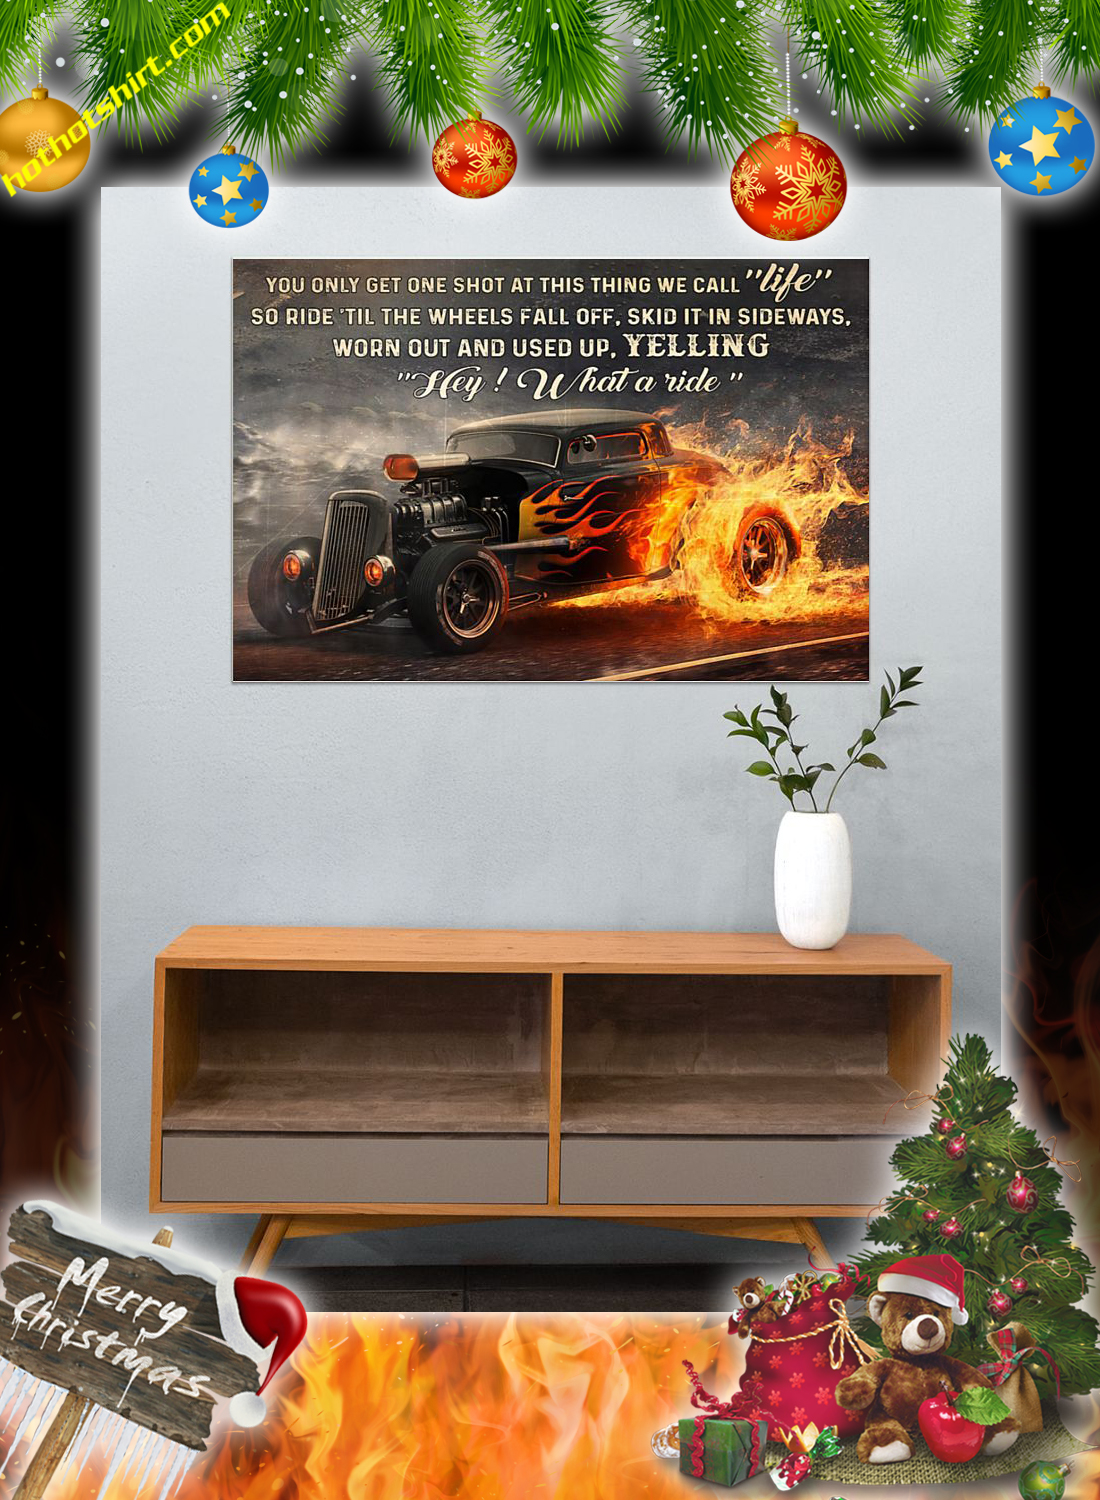 Hot rod what a ride poster 3